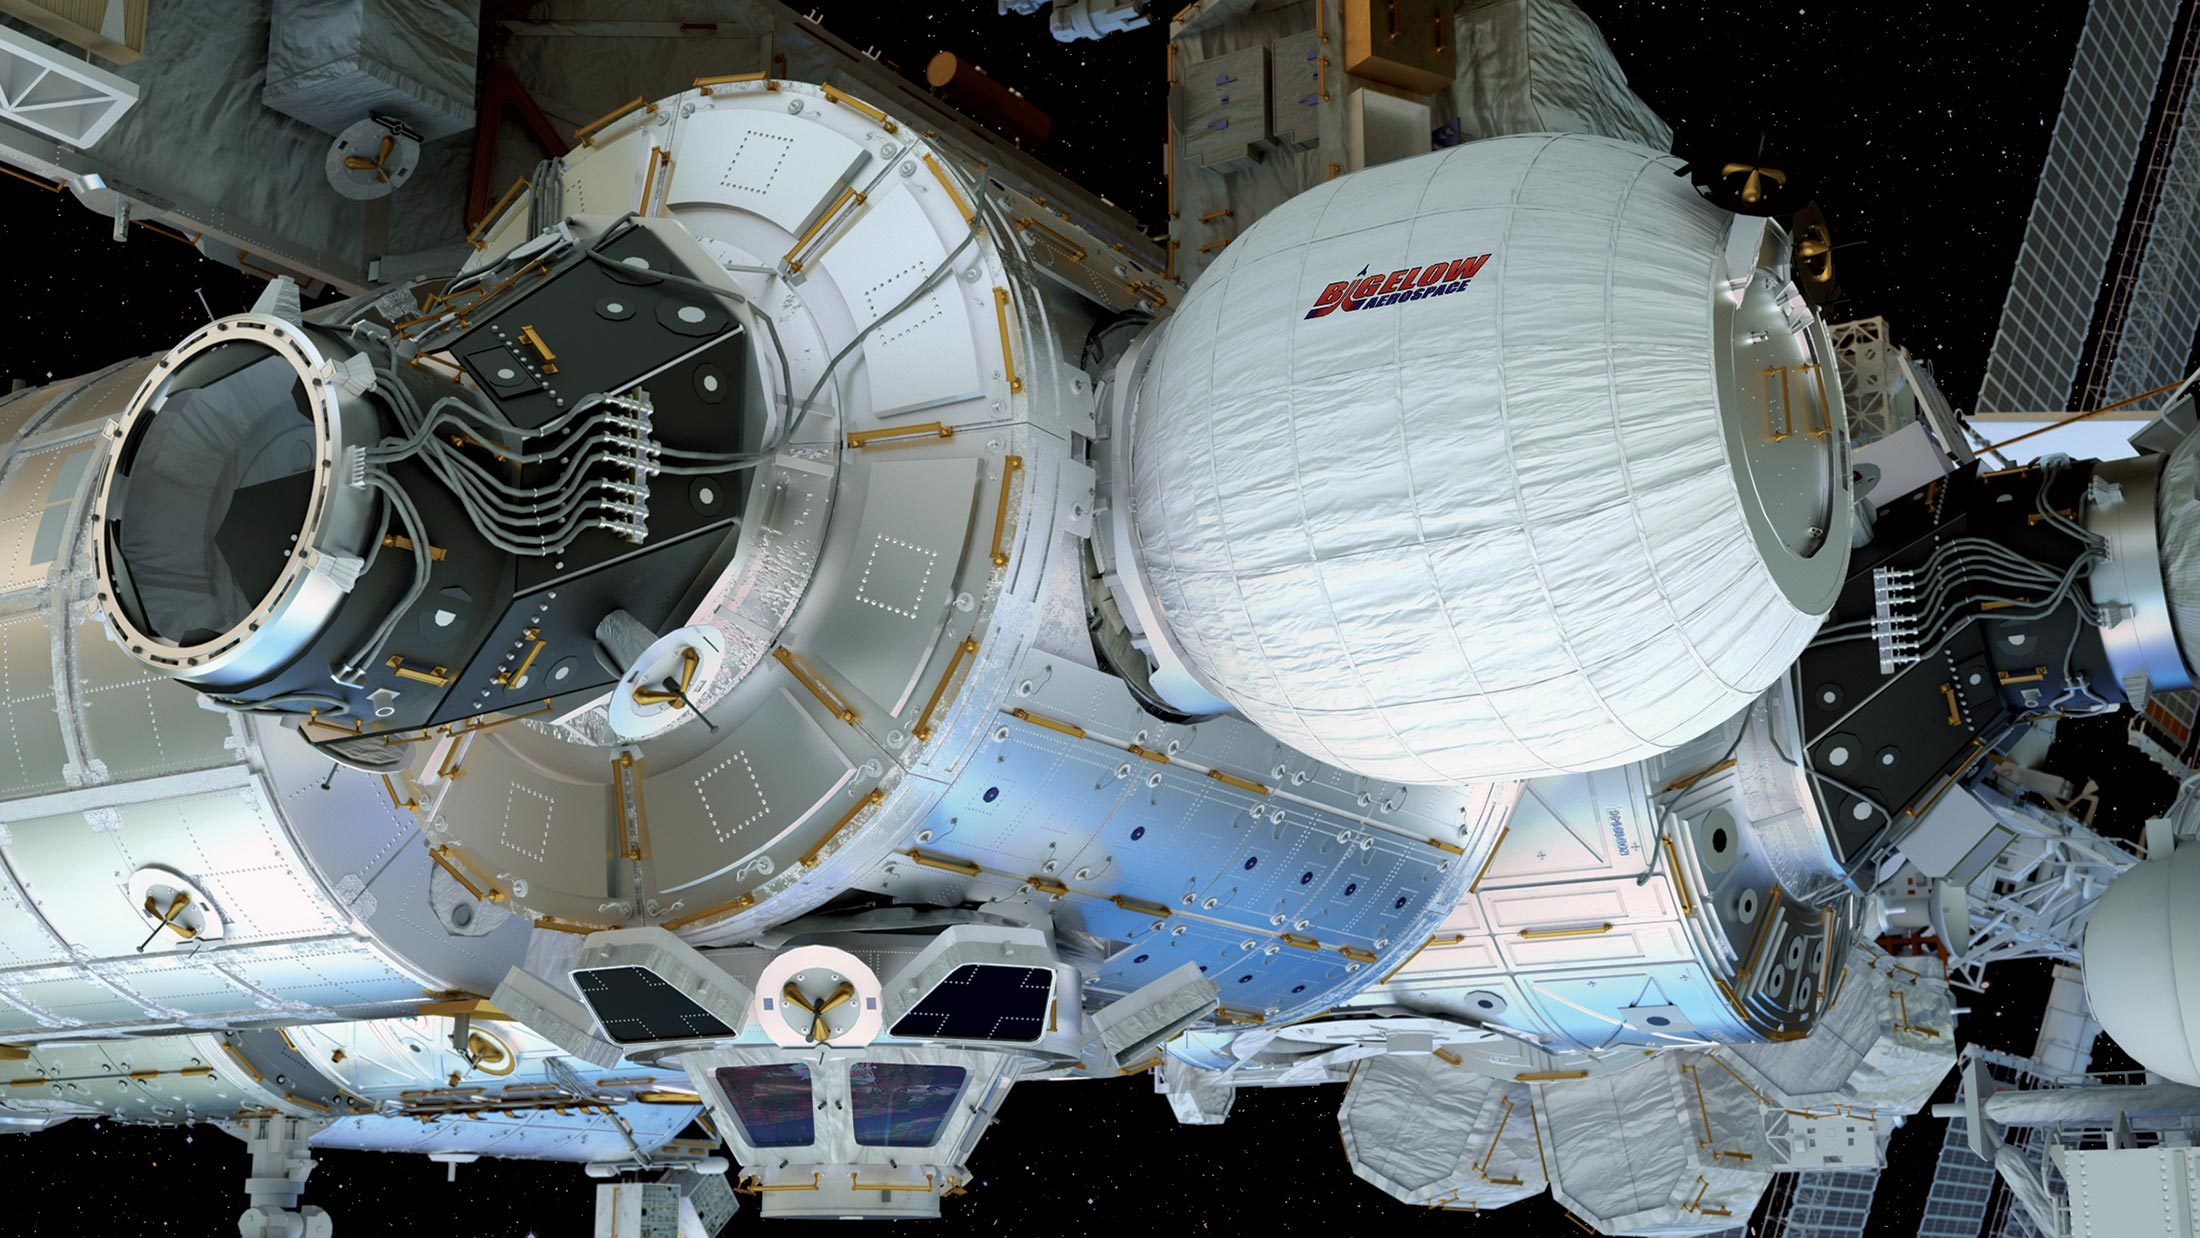 Bigelow Module inflates to form habitats beyond the moon